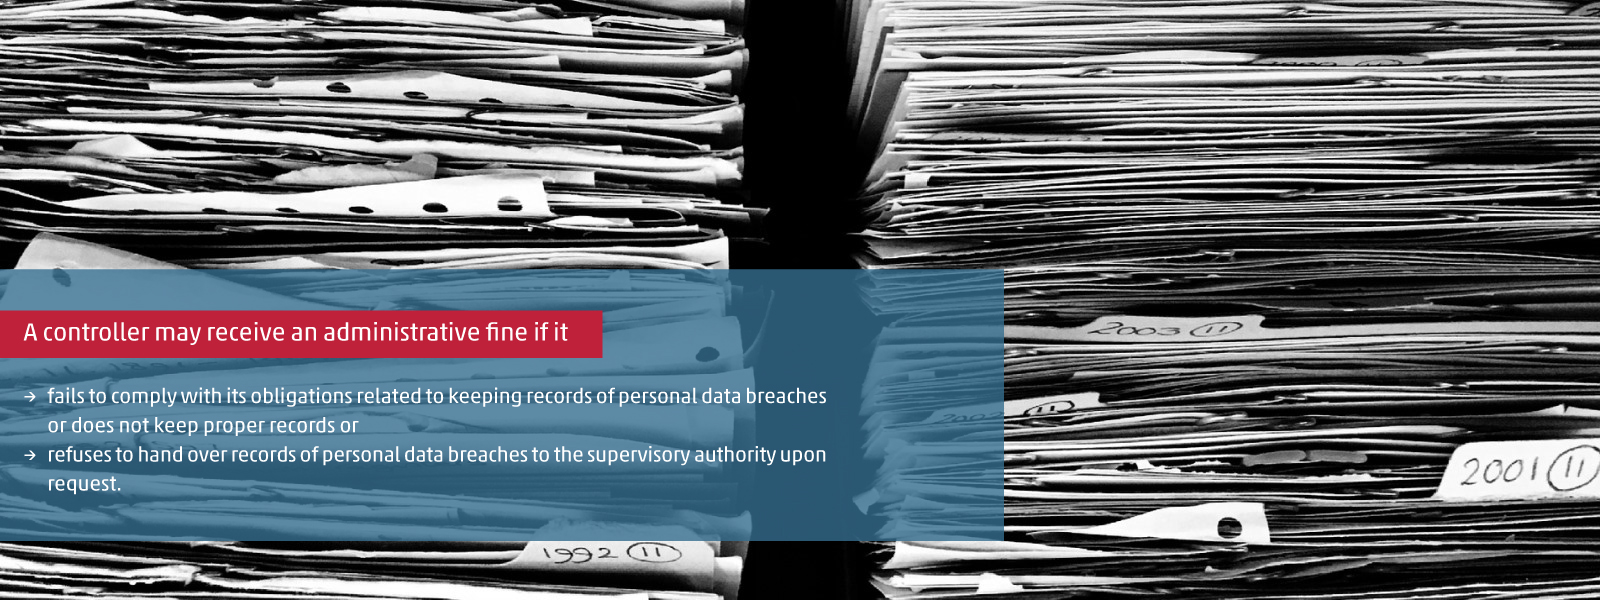 Keeping records of personal data breaches